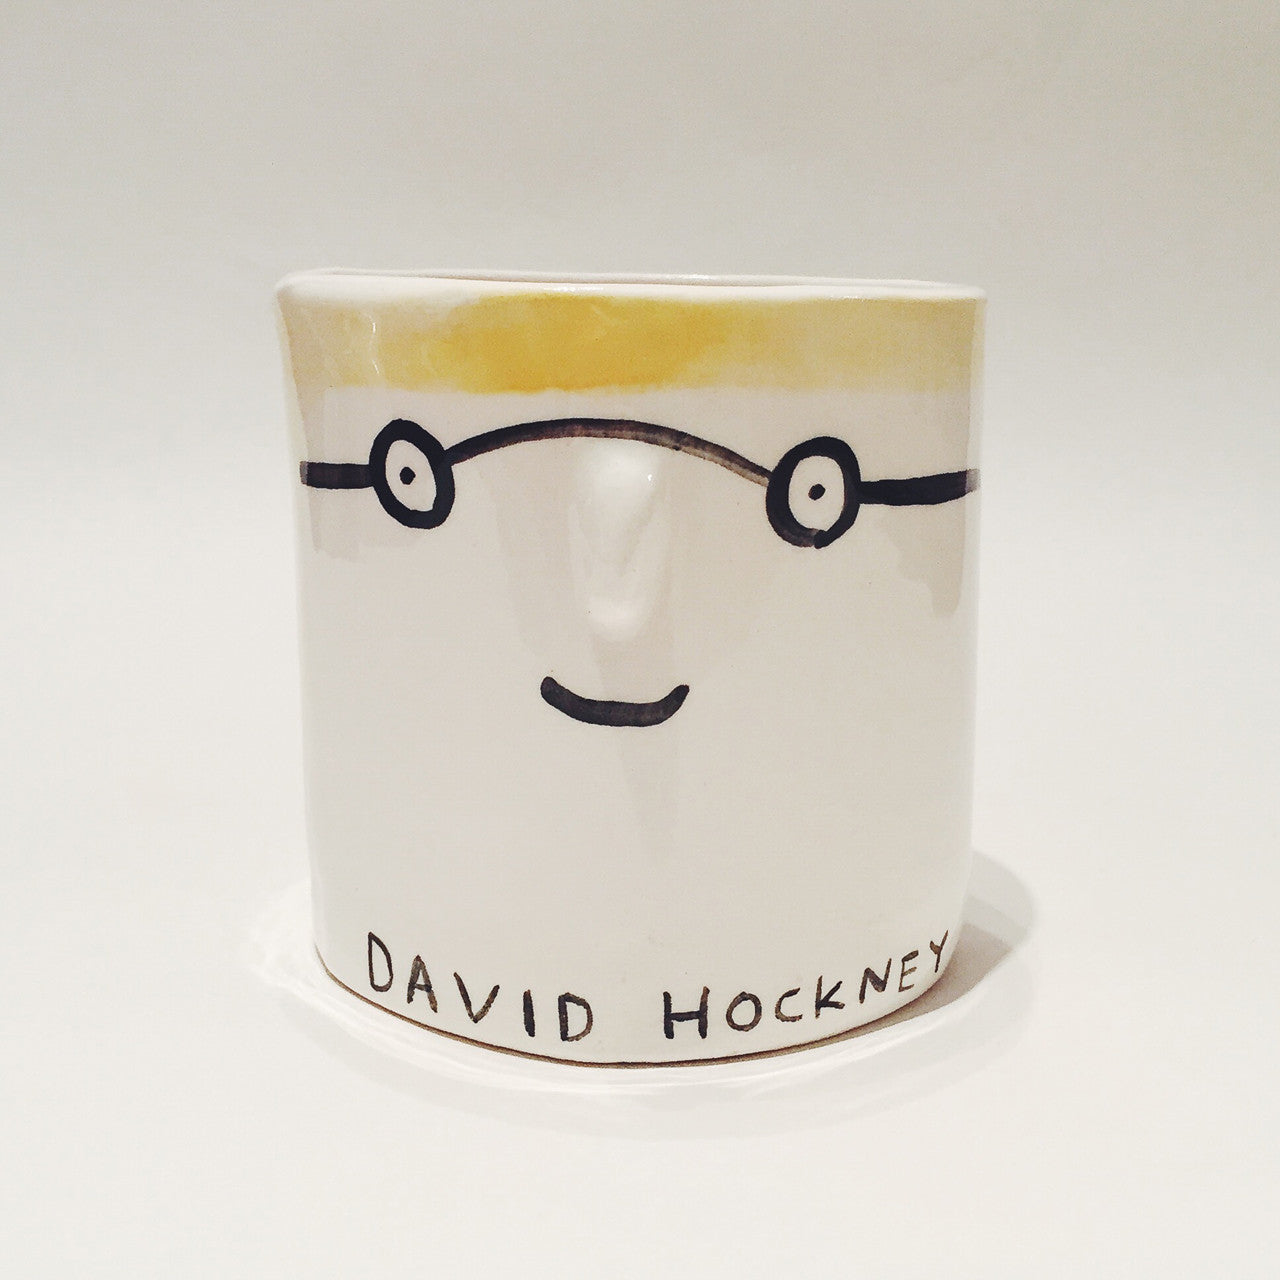 David Hockney Pot By Alex Sickling Soma Gallery